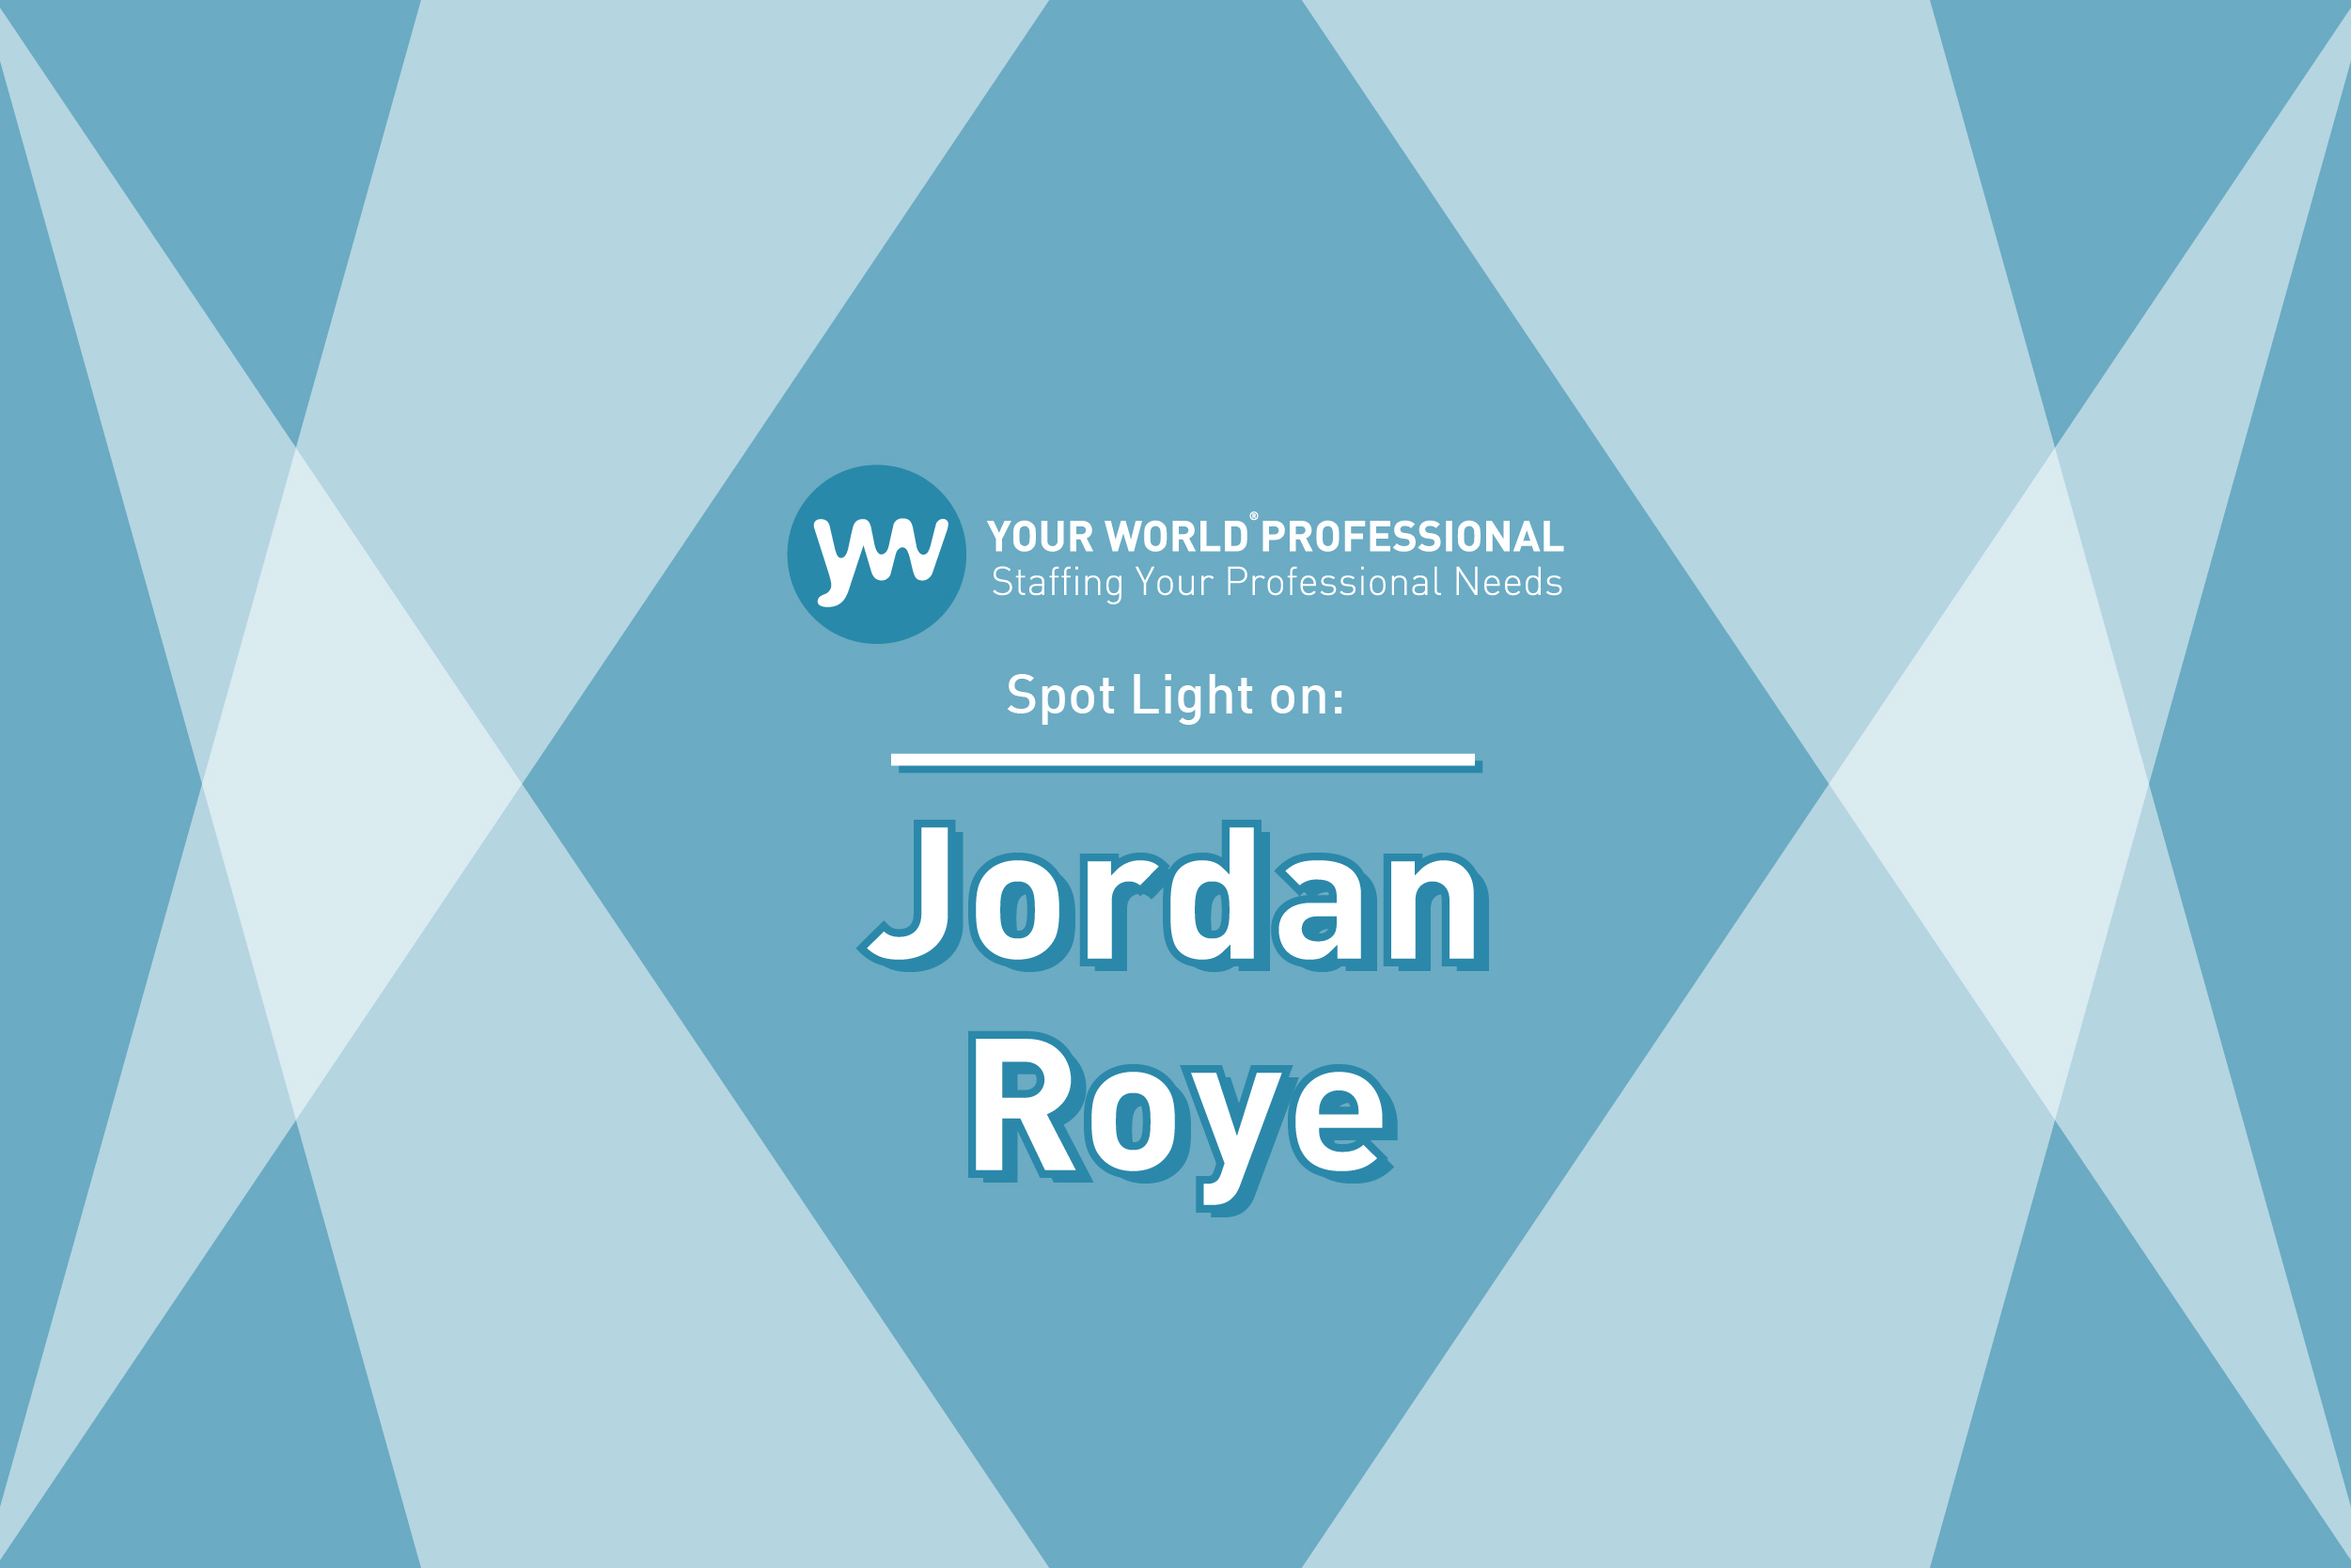 SPOTLIGHT ON...Jordan Roye